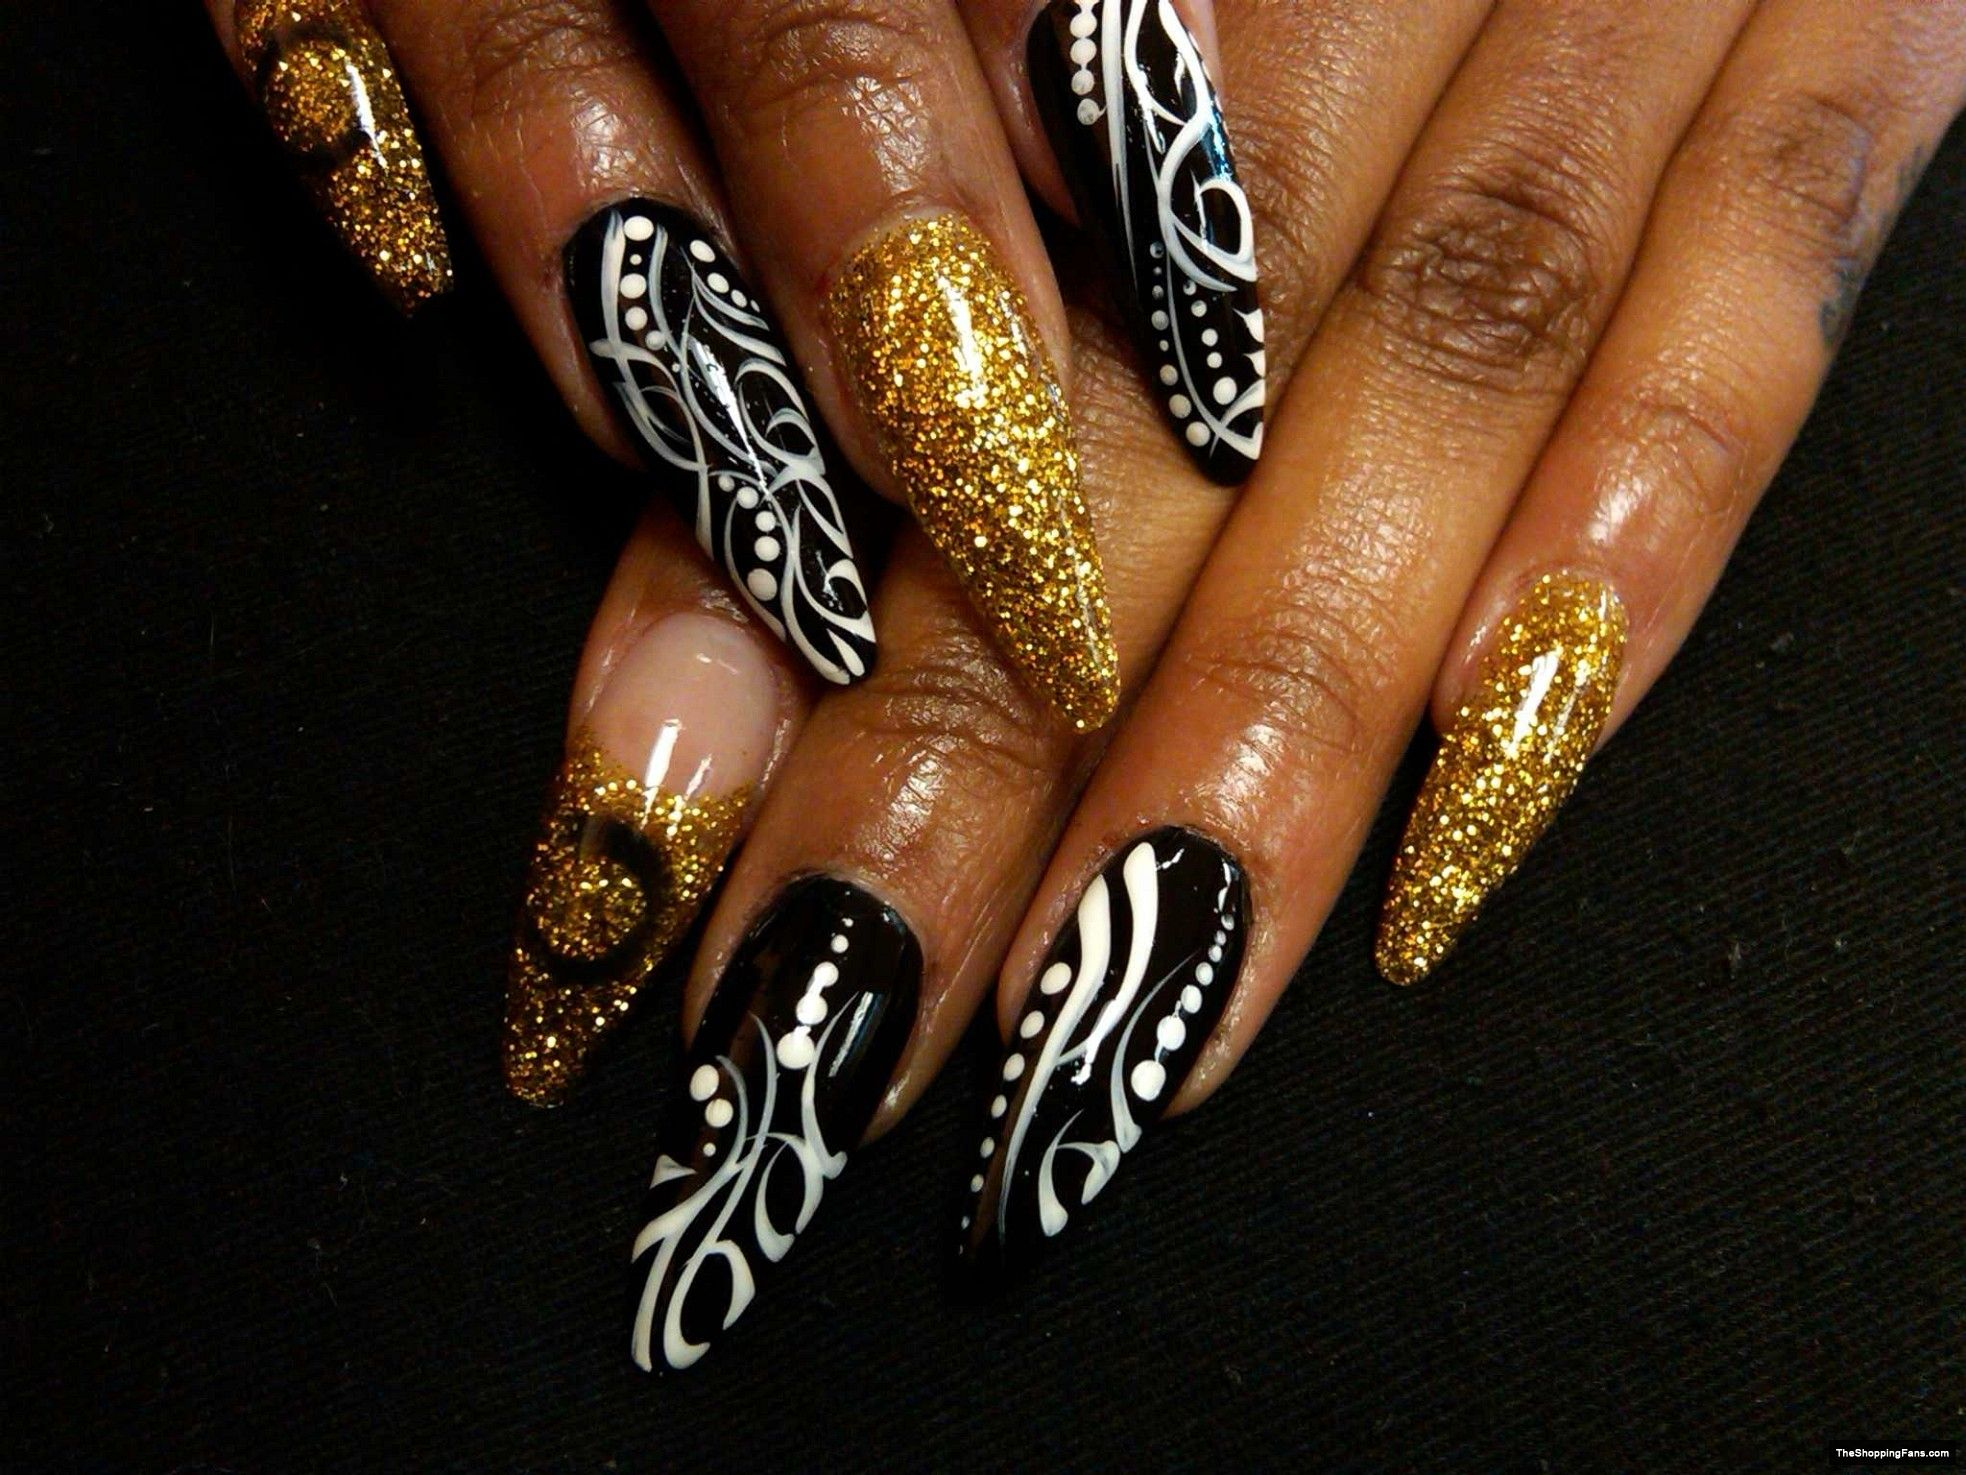 Blackwhite Gold Stiletto Nail Art